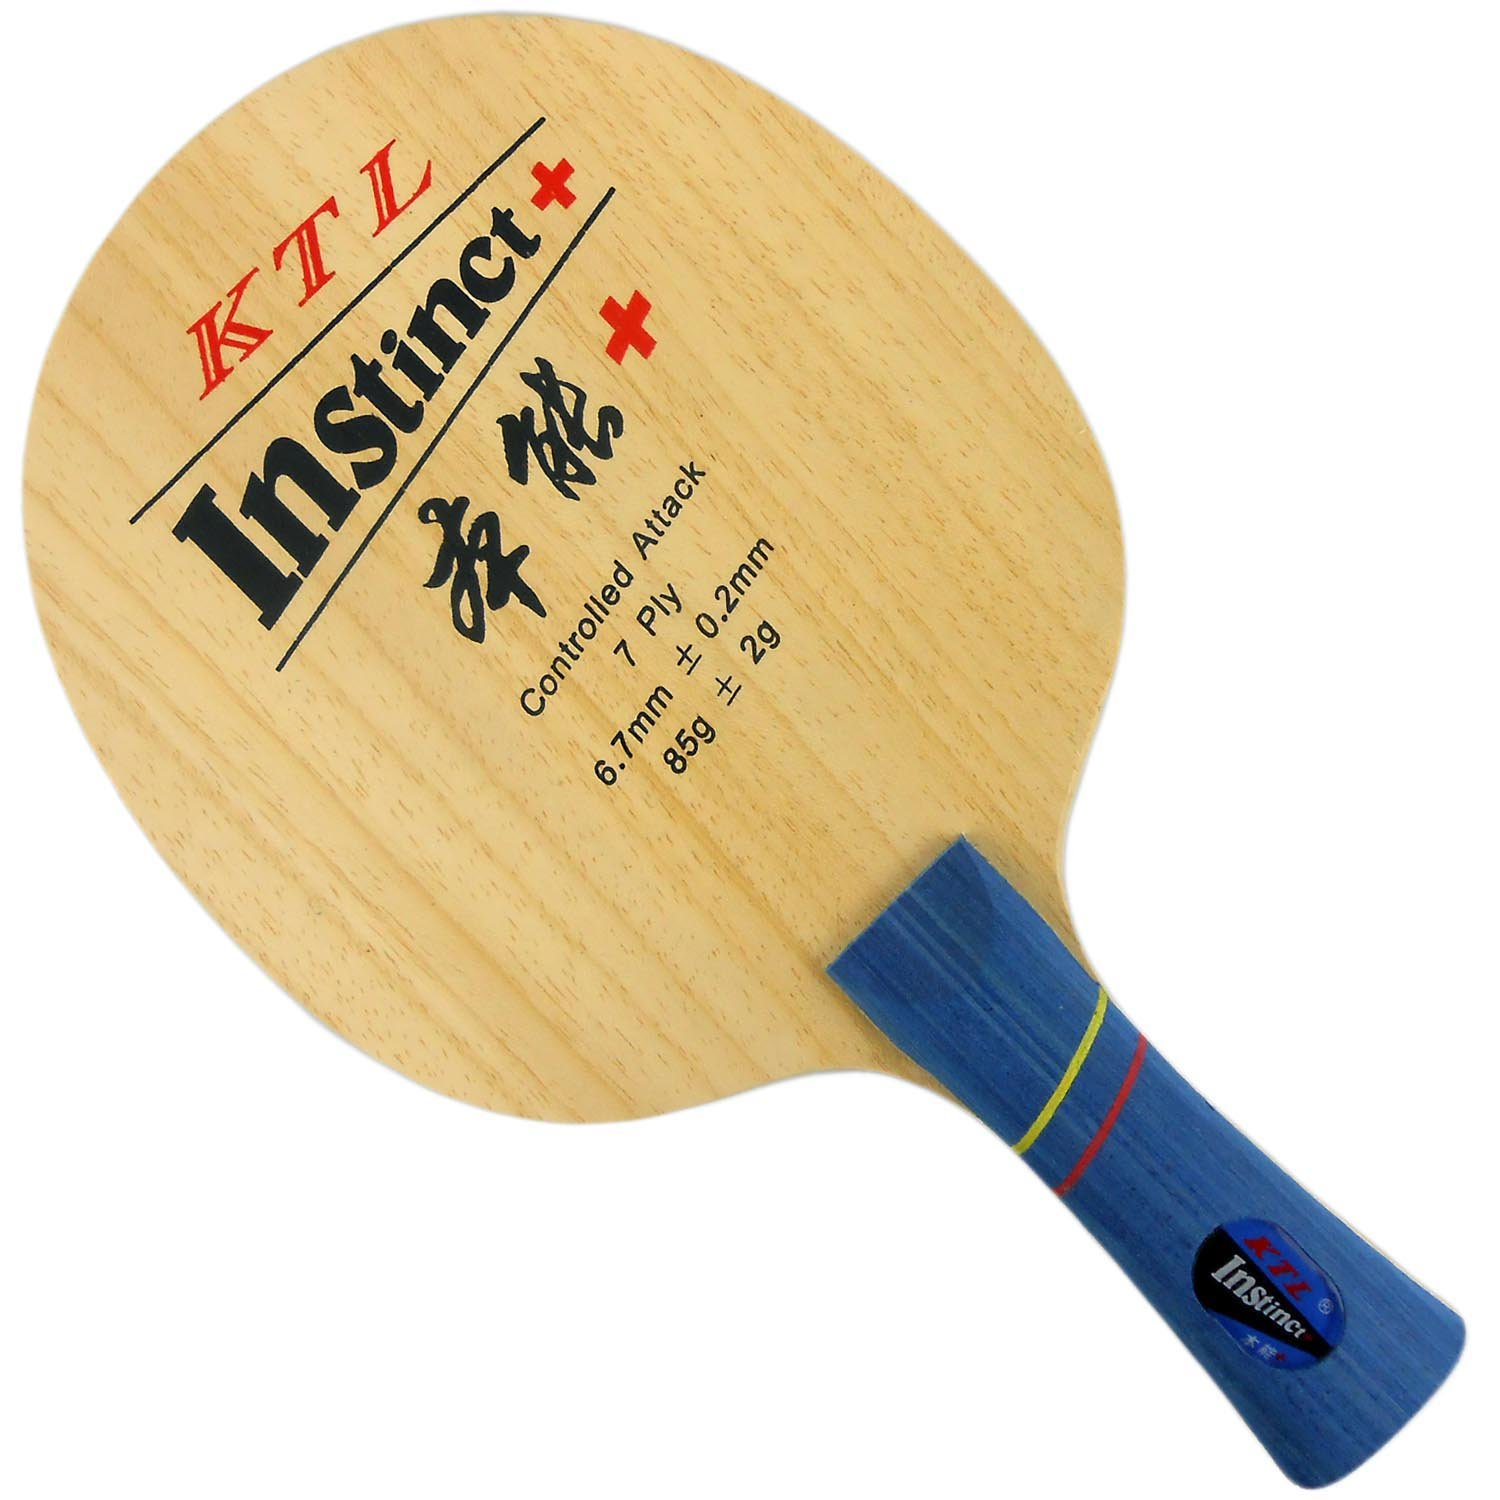 KTL Instinct + ( l-1009、l1009、L 1009 ) Controlled Attack Table Tennisブレードfor Ping Pong Racket、ロング( Shakehand ) -fl B00RSOKMS6